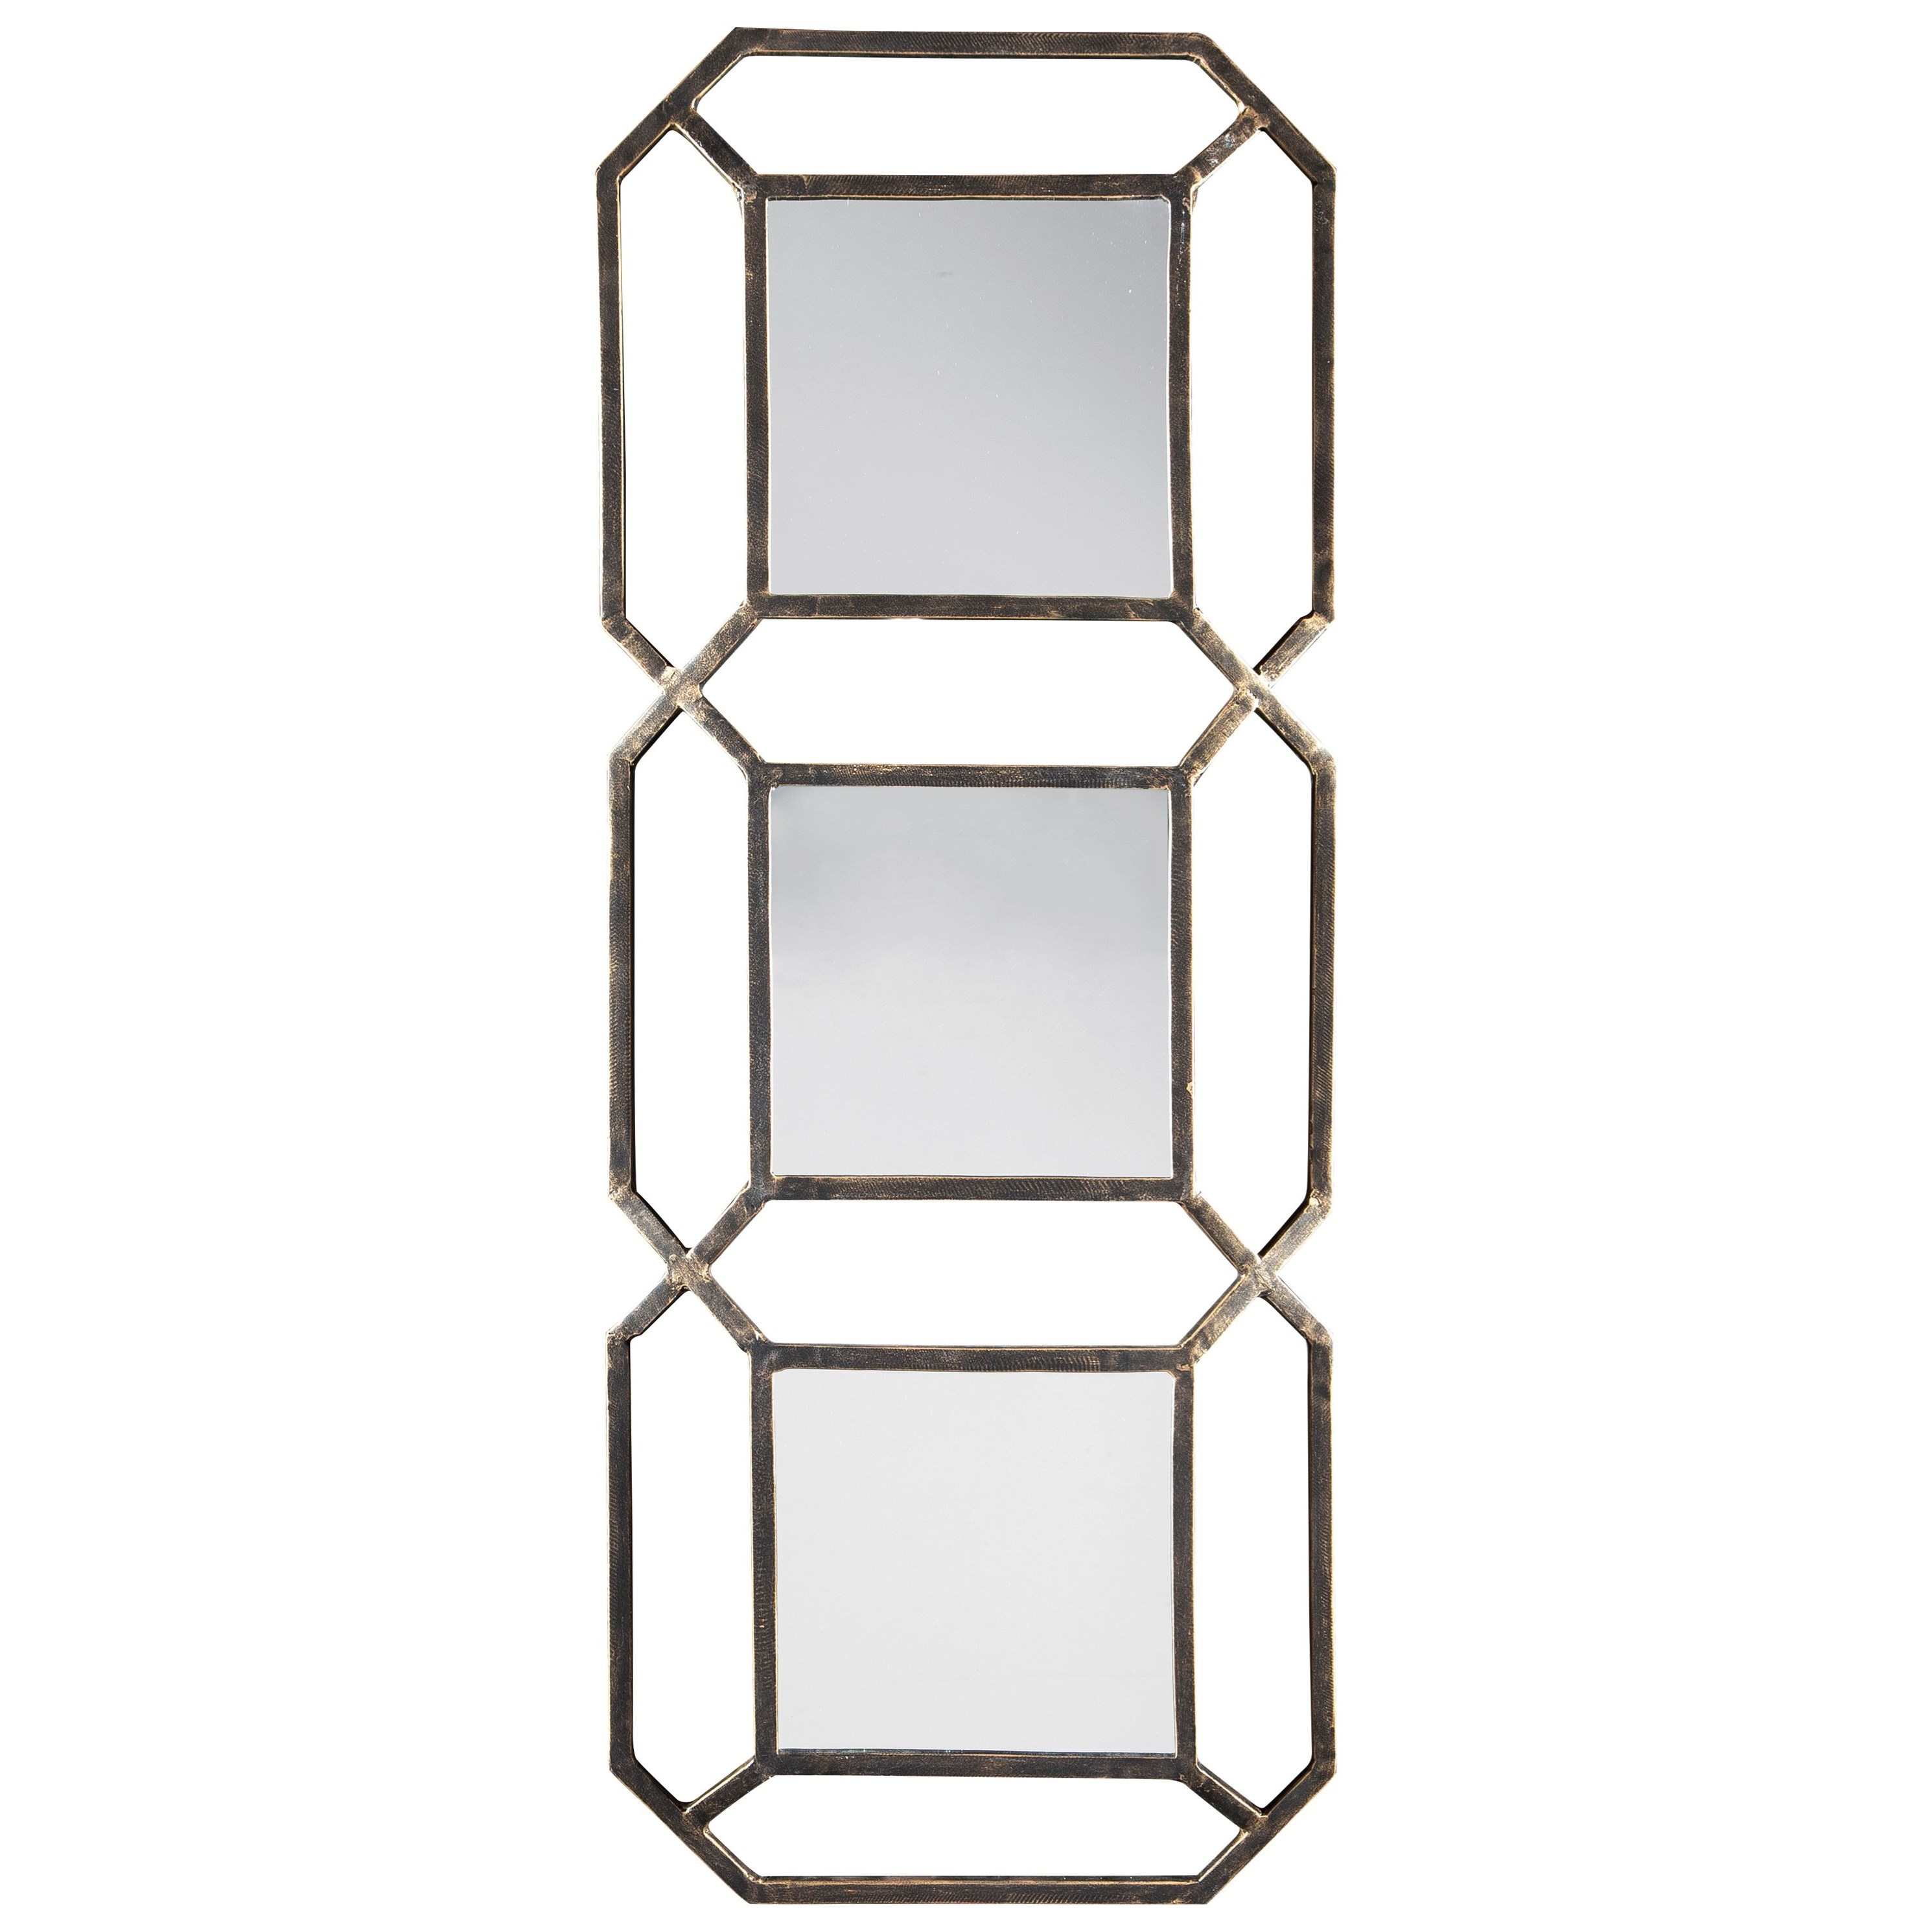 Accent Mirrors Savane Antique Gold Finish Accent Mirror by Signature Design by Ashley at Beds N Stuff